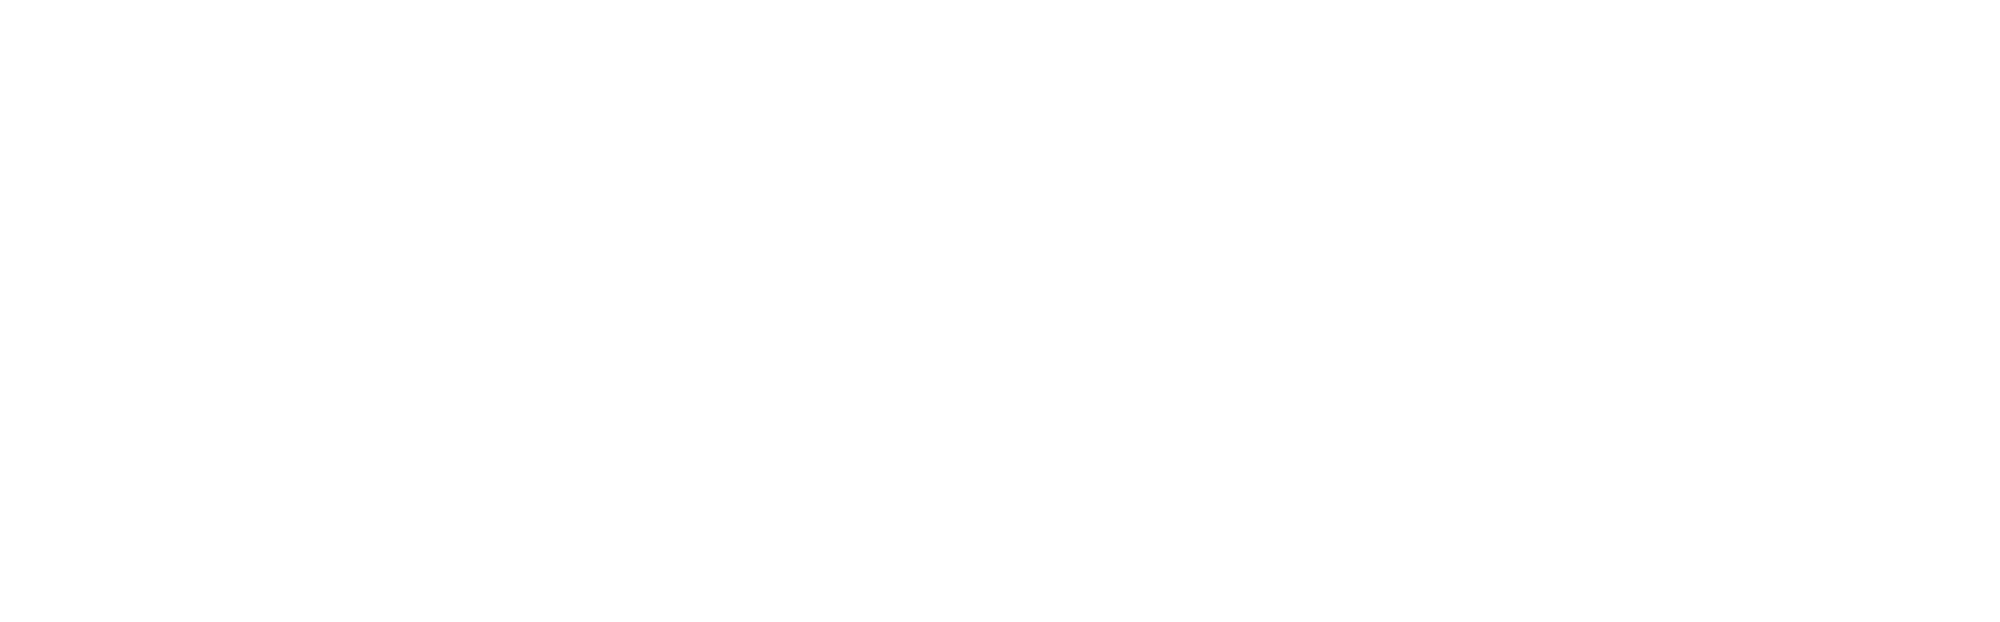 favor-white.png